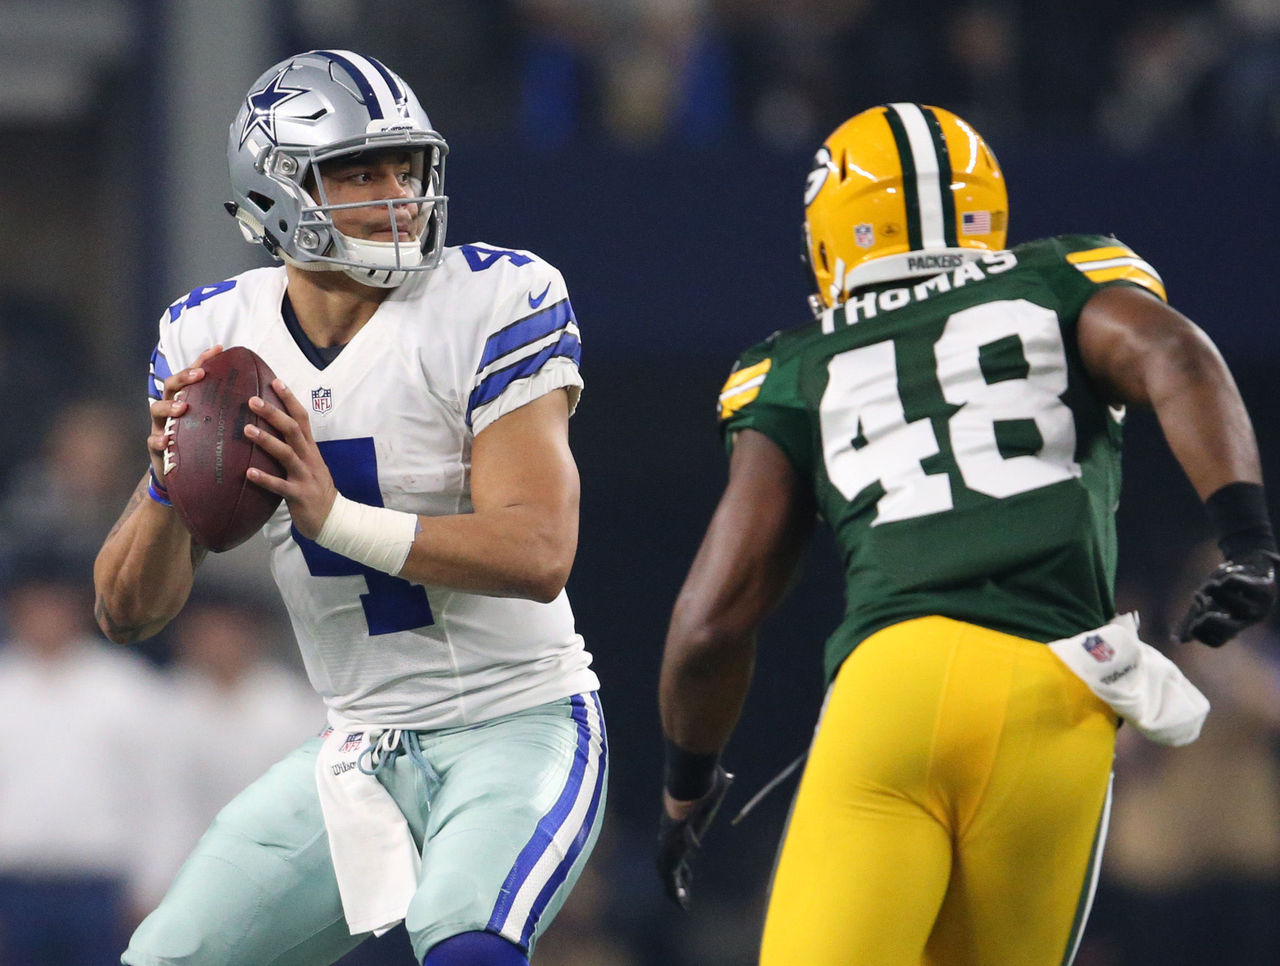 Cropped 2017 01 15t231619z 2005704529 nocid rtrmadp 3 nfl nfc divisional green bay packers at dallas cowboys